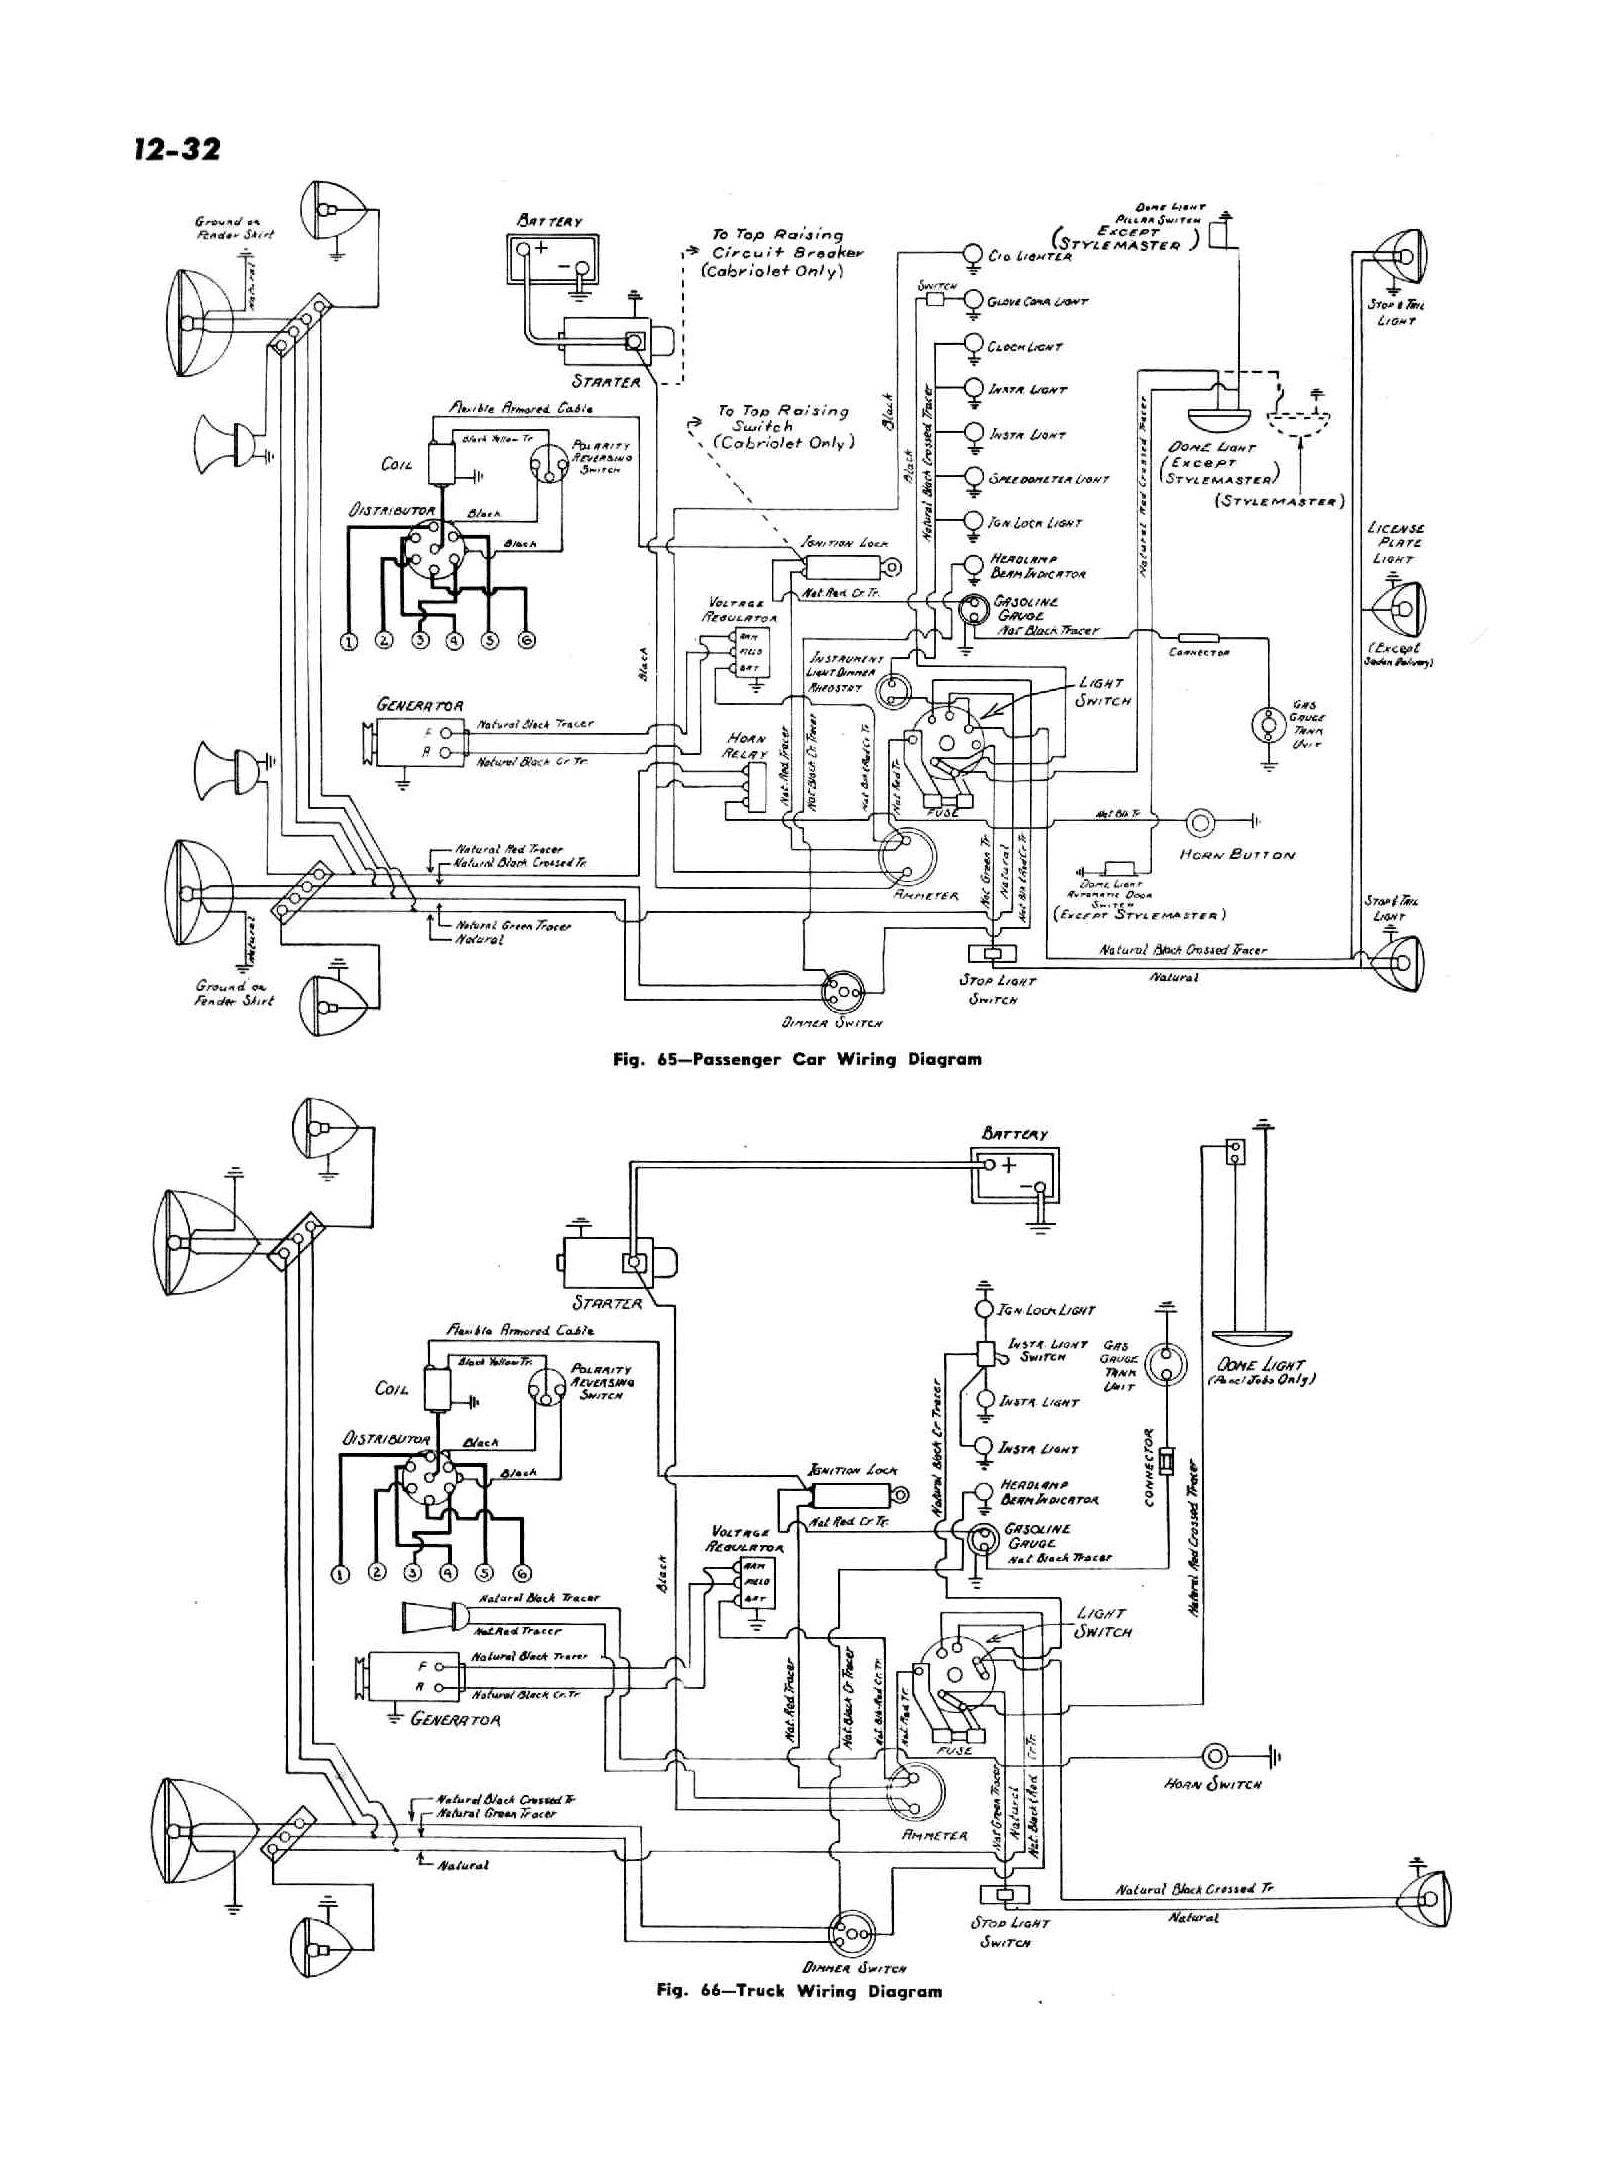 Chevy Silverado Wiring Diagram Wiring Diagrams Of Chevy Silverado Wiring Diagram